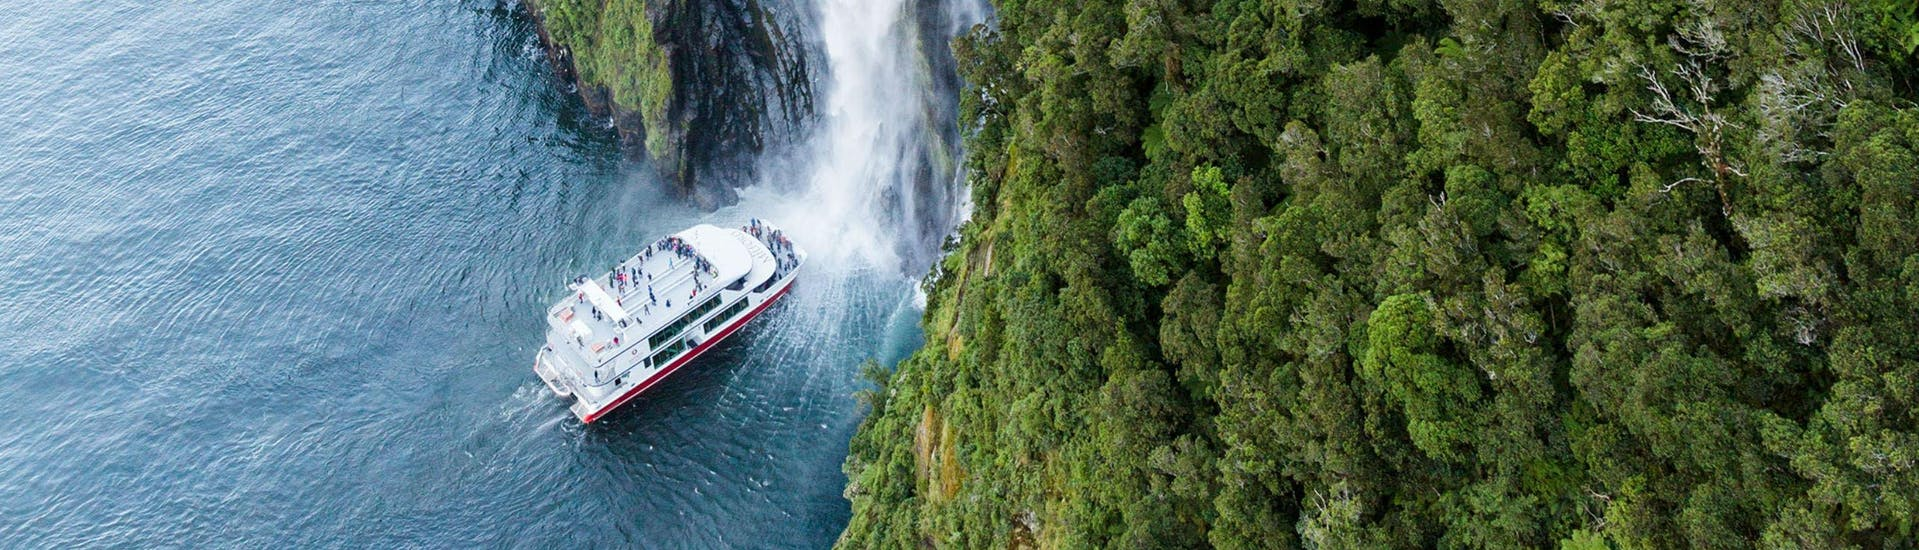 One of the catamarans operated by Southern Discoveries can be seen approaching a waterfall during the Milford Sound Scenic Day Trip from Queenstown - Winter.